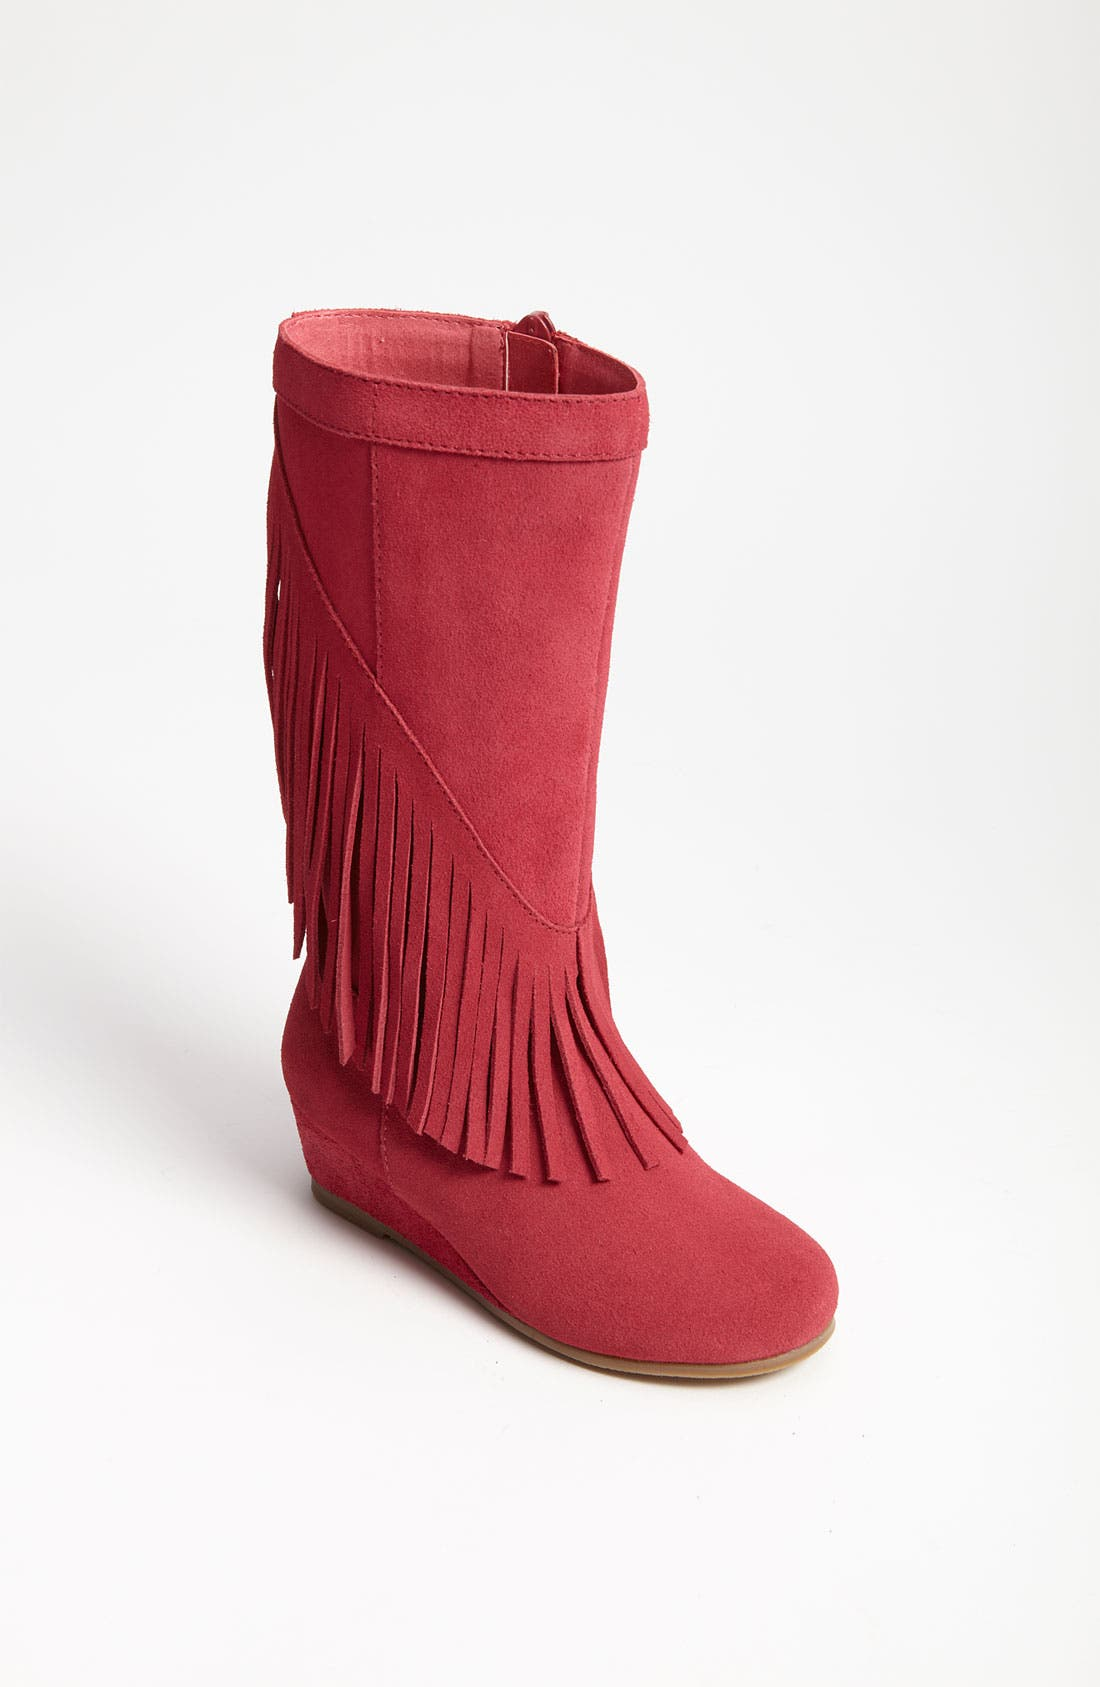 Alternate Image 1 Selected - Steve Madden 'Fringey' Boot (Toddler)